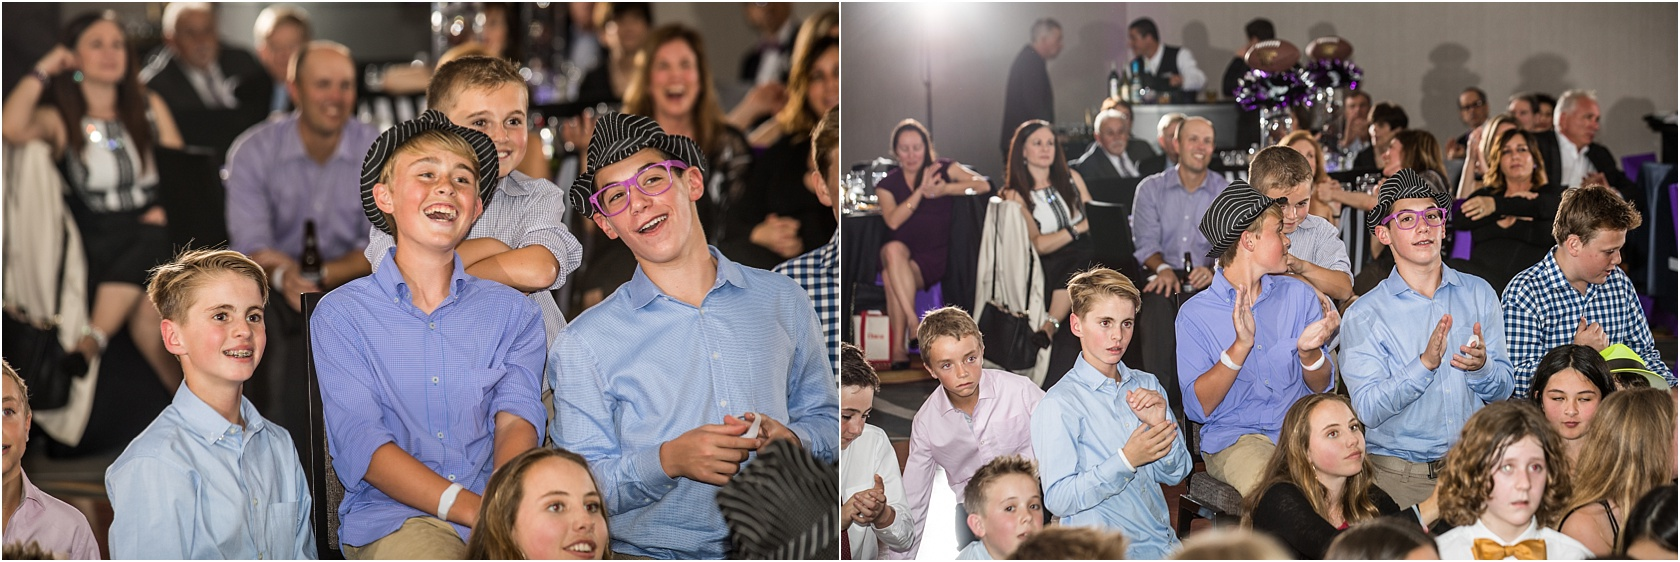 Matts San Diego Bar Mitzvah Living Radiant Photography_0168.jpg